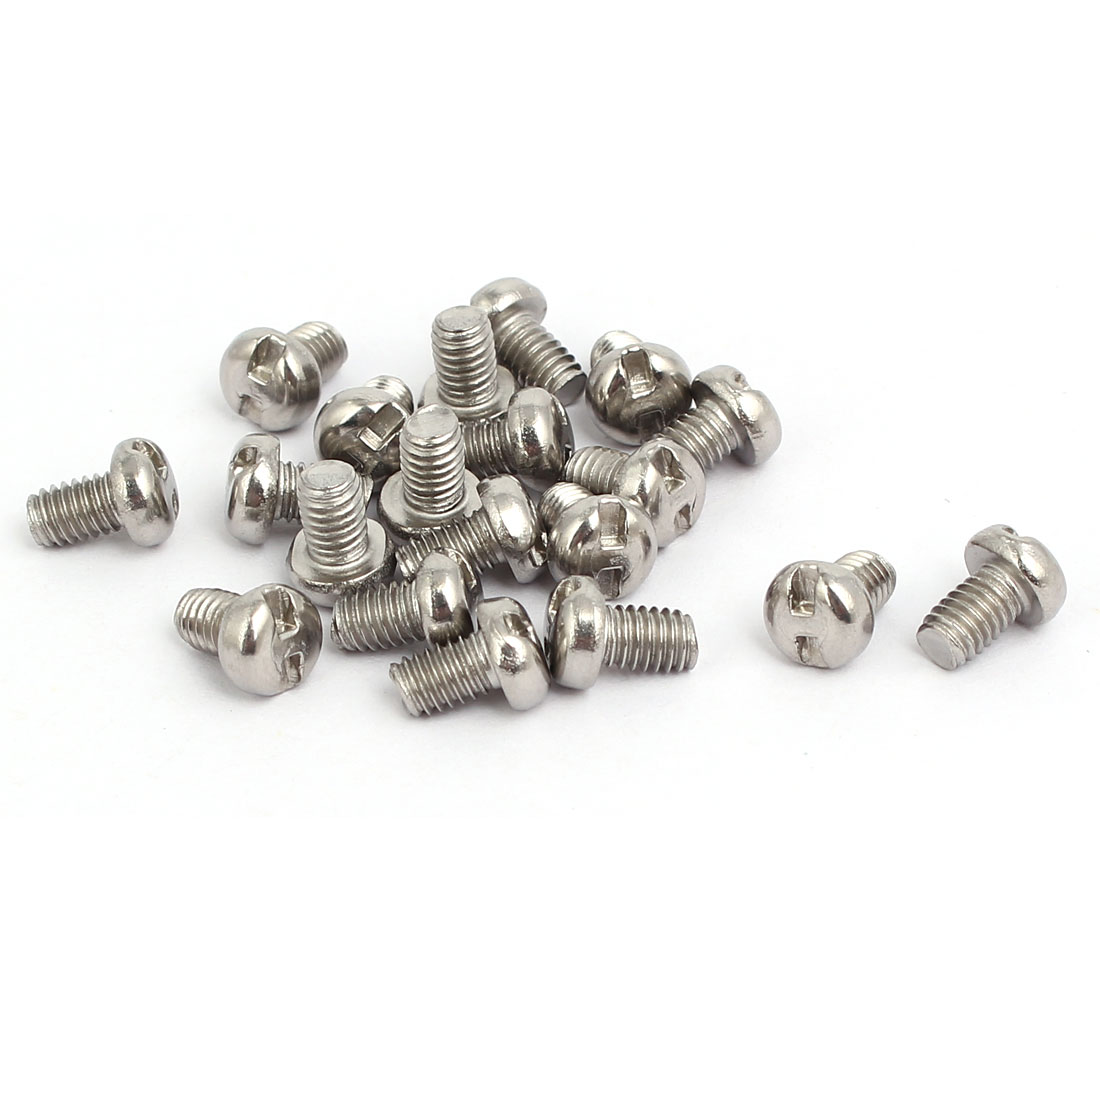 M4x6mm 304 Stainless Steel H-Type Drive Pan Head Tamper Proof Screws 20pcs